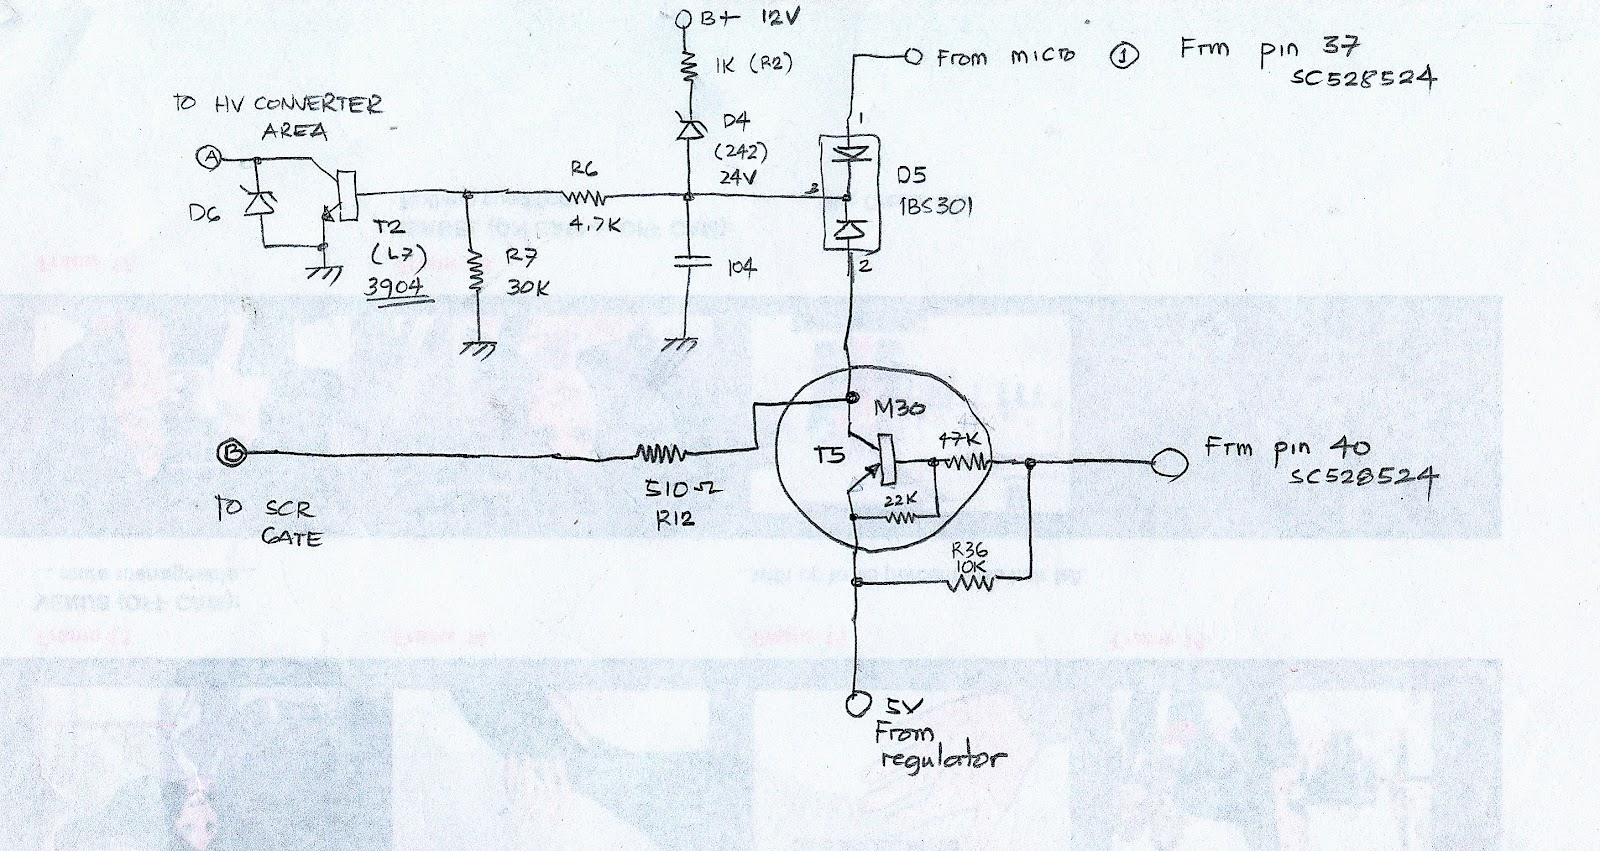 shogun dc cdi schematic techy at day blogger at noon and a high voltage dc dc converter circuit